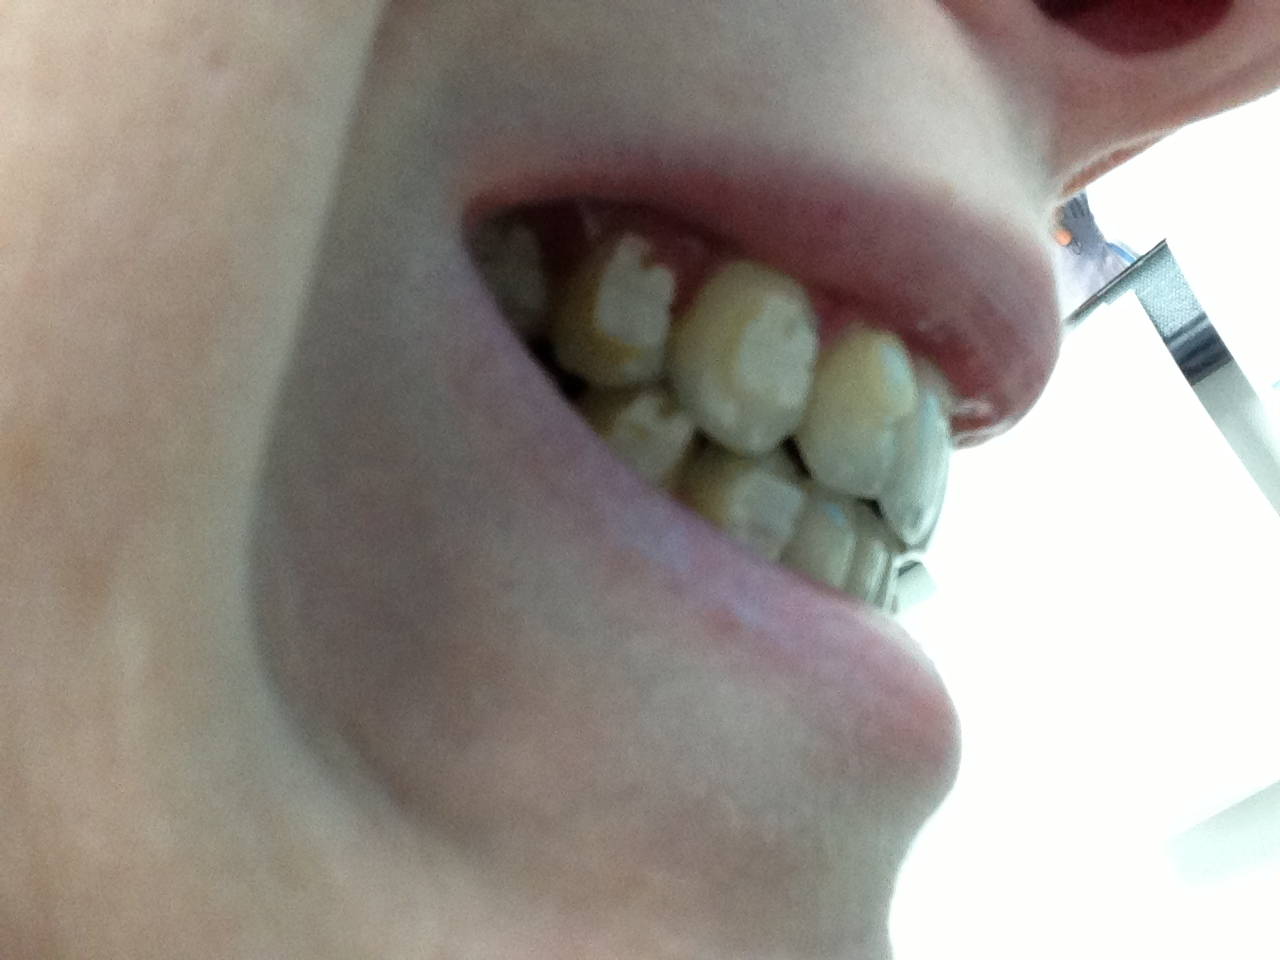 Lingual Braces Blog: New elastics configuration - After 5 weeks